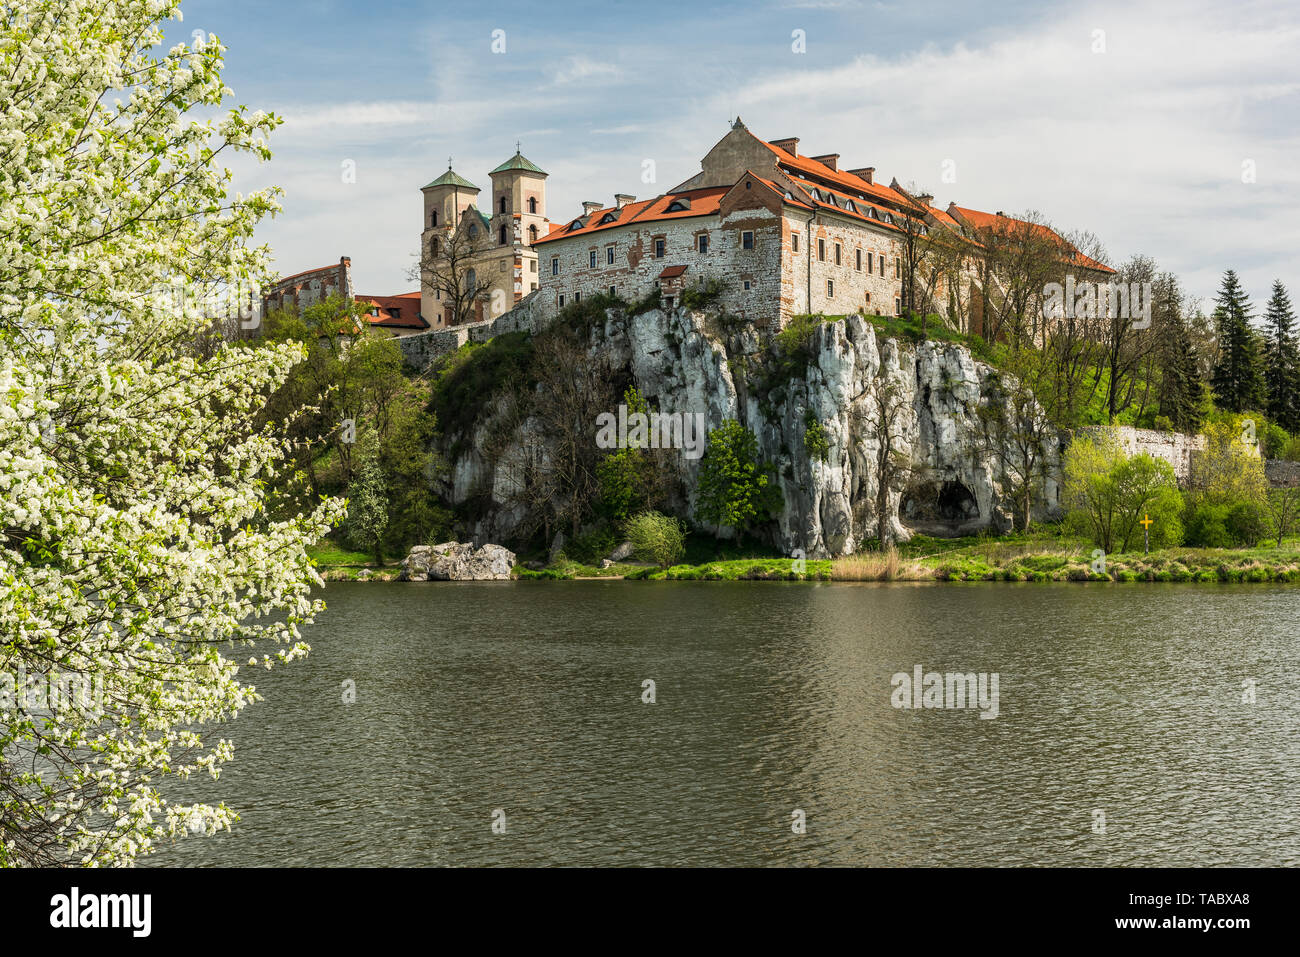 Benedictine abbey, monastery and Saint Peter and Paul church in Tyniec near Krakow, Poland. - Stock Image